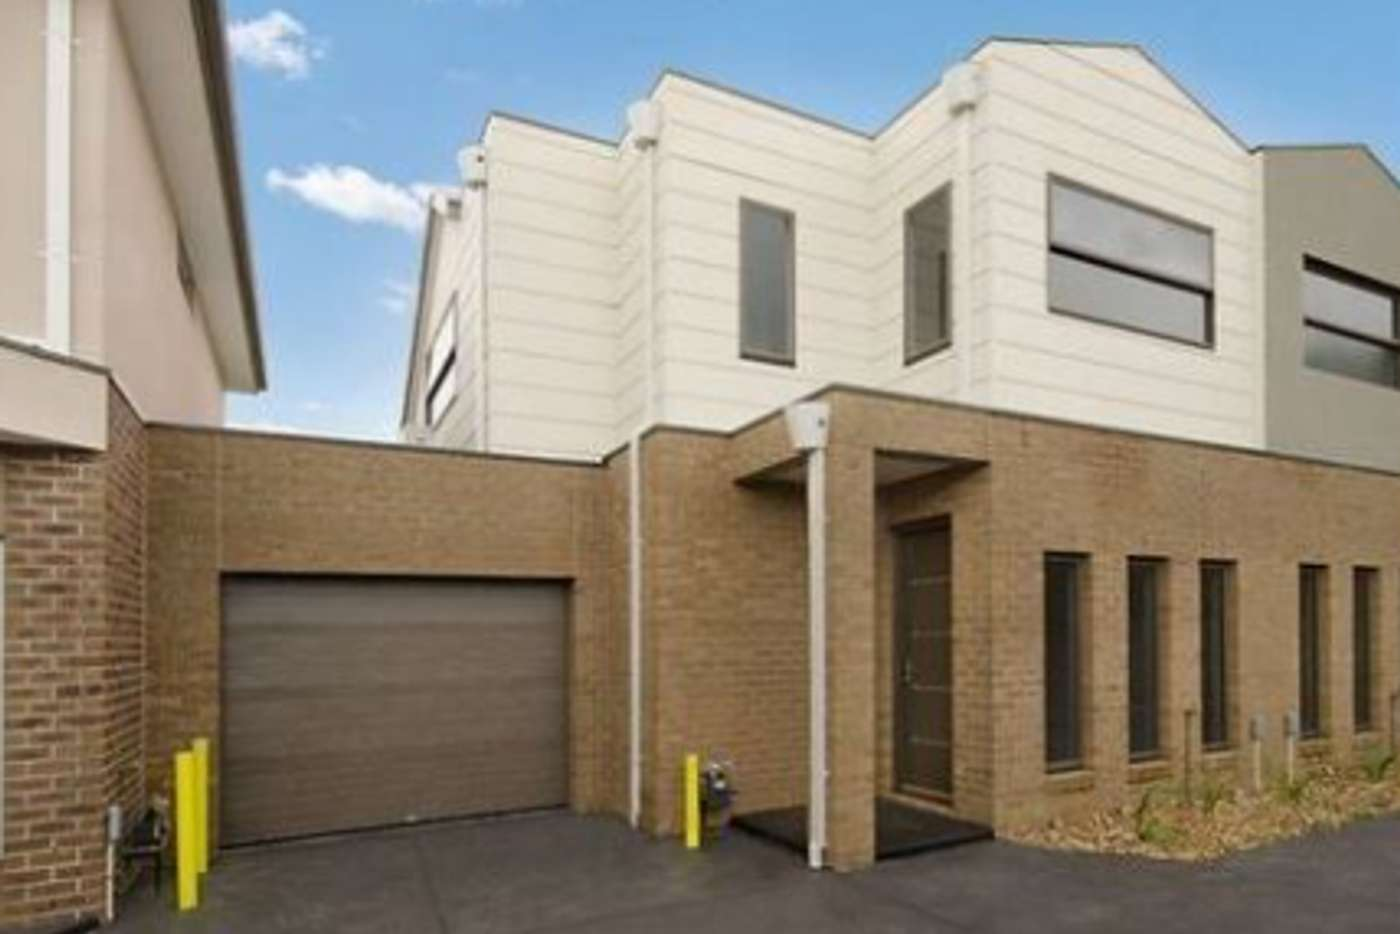 Main view of Homely townhouse listing, 3/22 Myrtle Grove, North Shore VIC 3214